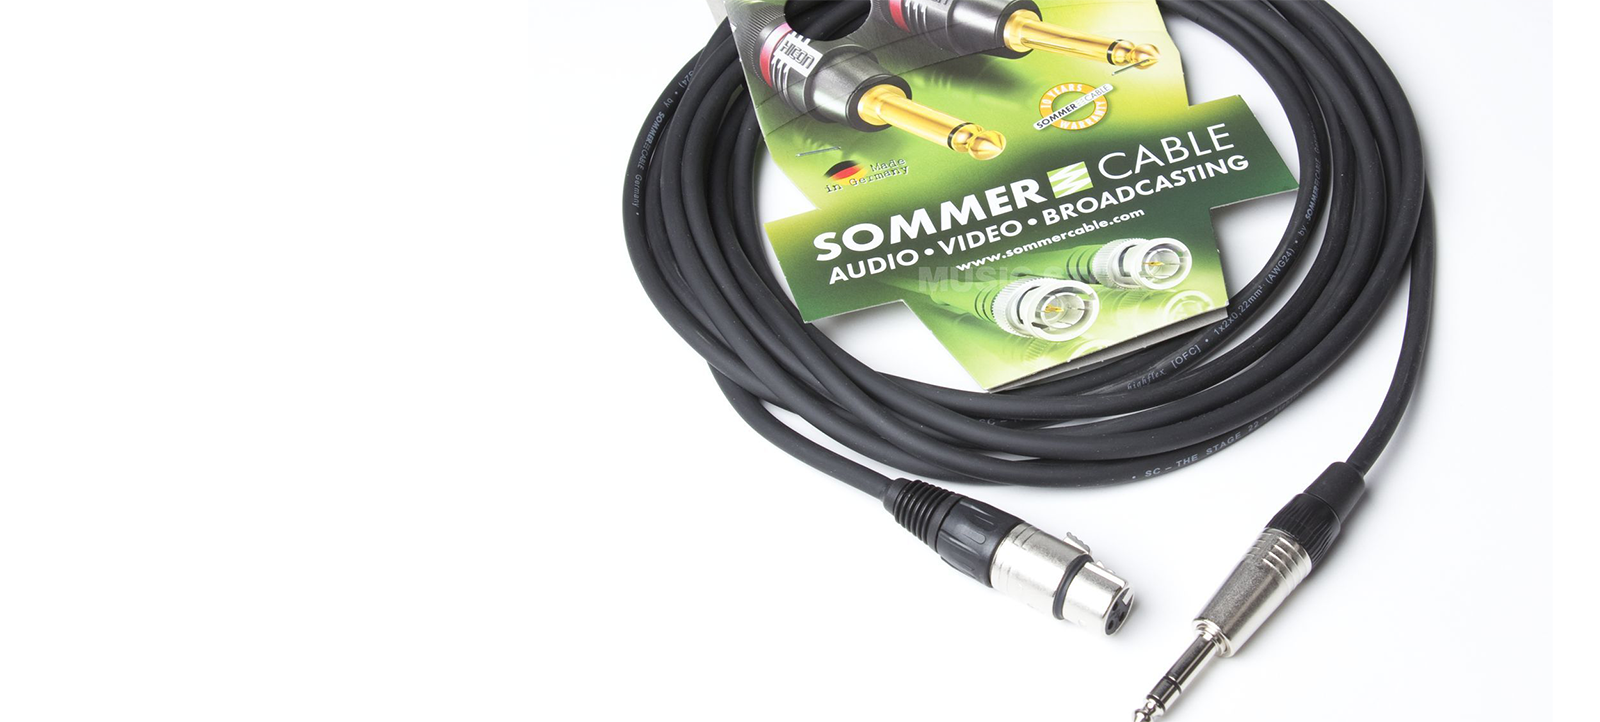 sommercable